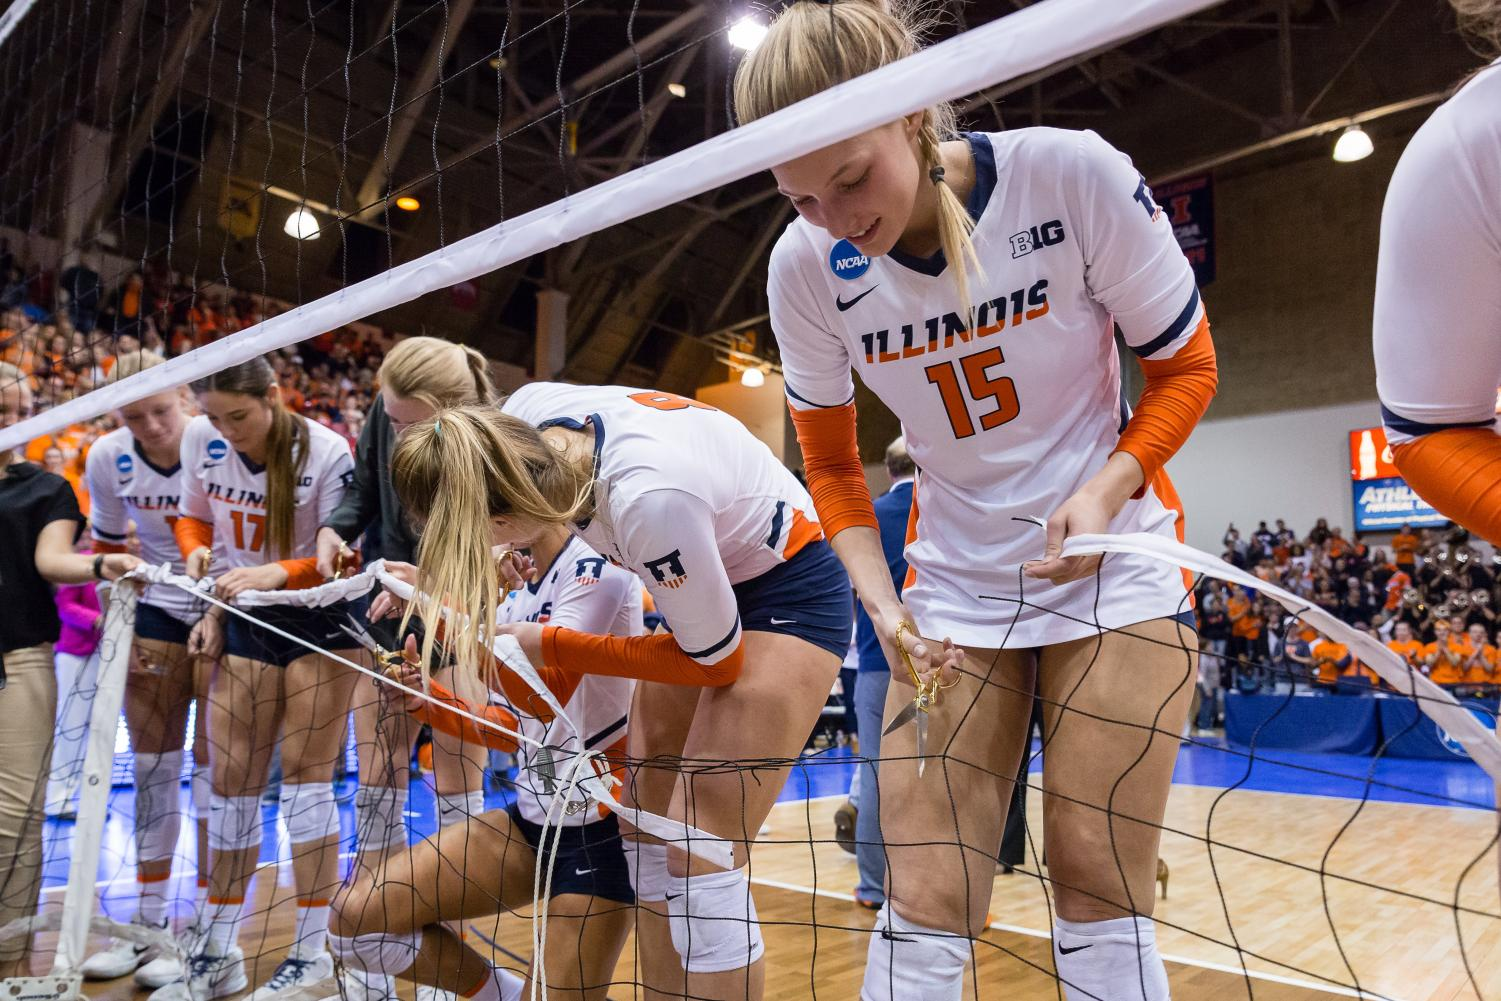 Illinois outside hitter Megan Cooney (15) and outside hitter Beth Prince (8) cut the net after the match against Wisconsin Saturday. The Illini will participate in the Final Four in Minneapolis, Minnesota, this week.